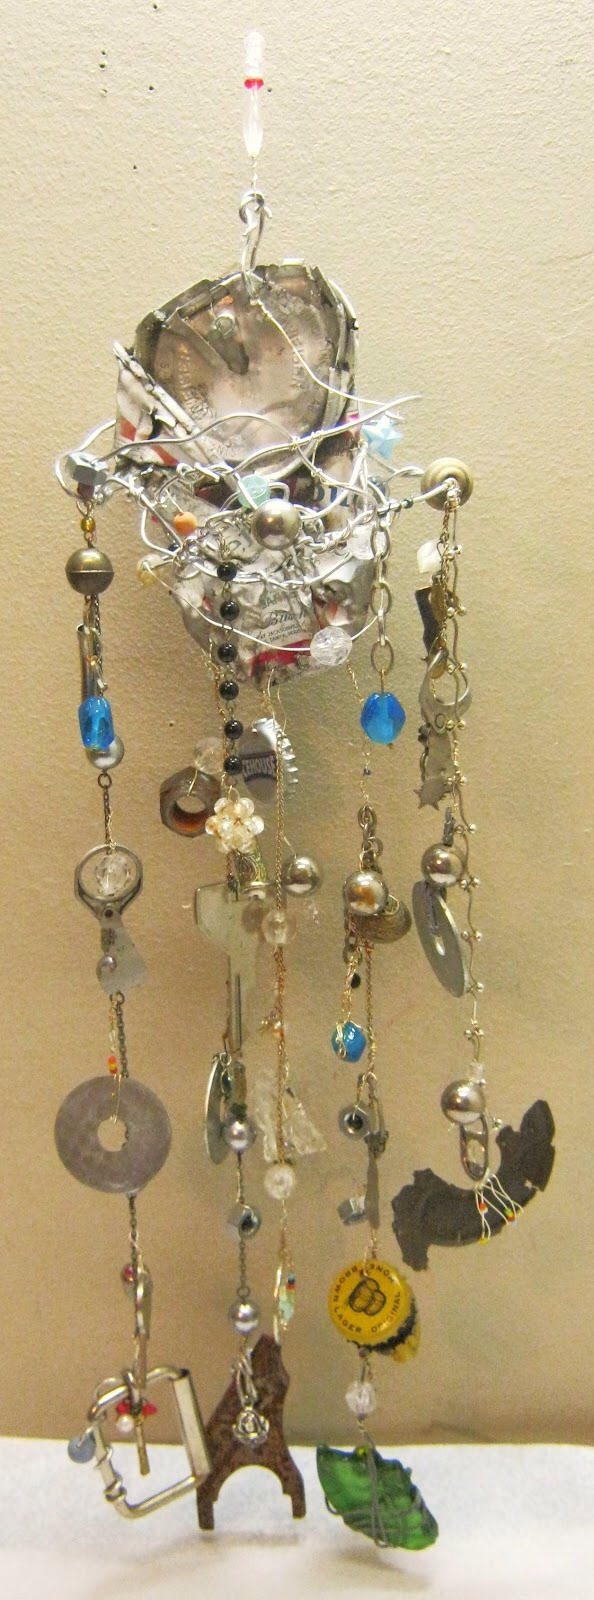 Junk Windchime by Trina Lyn